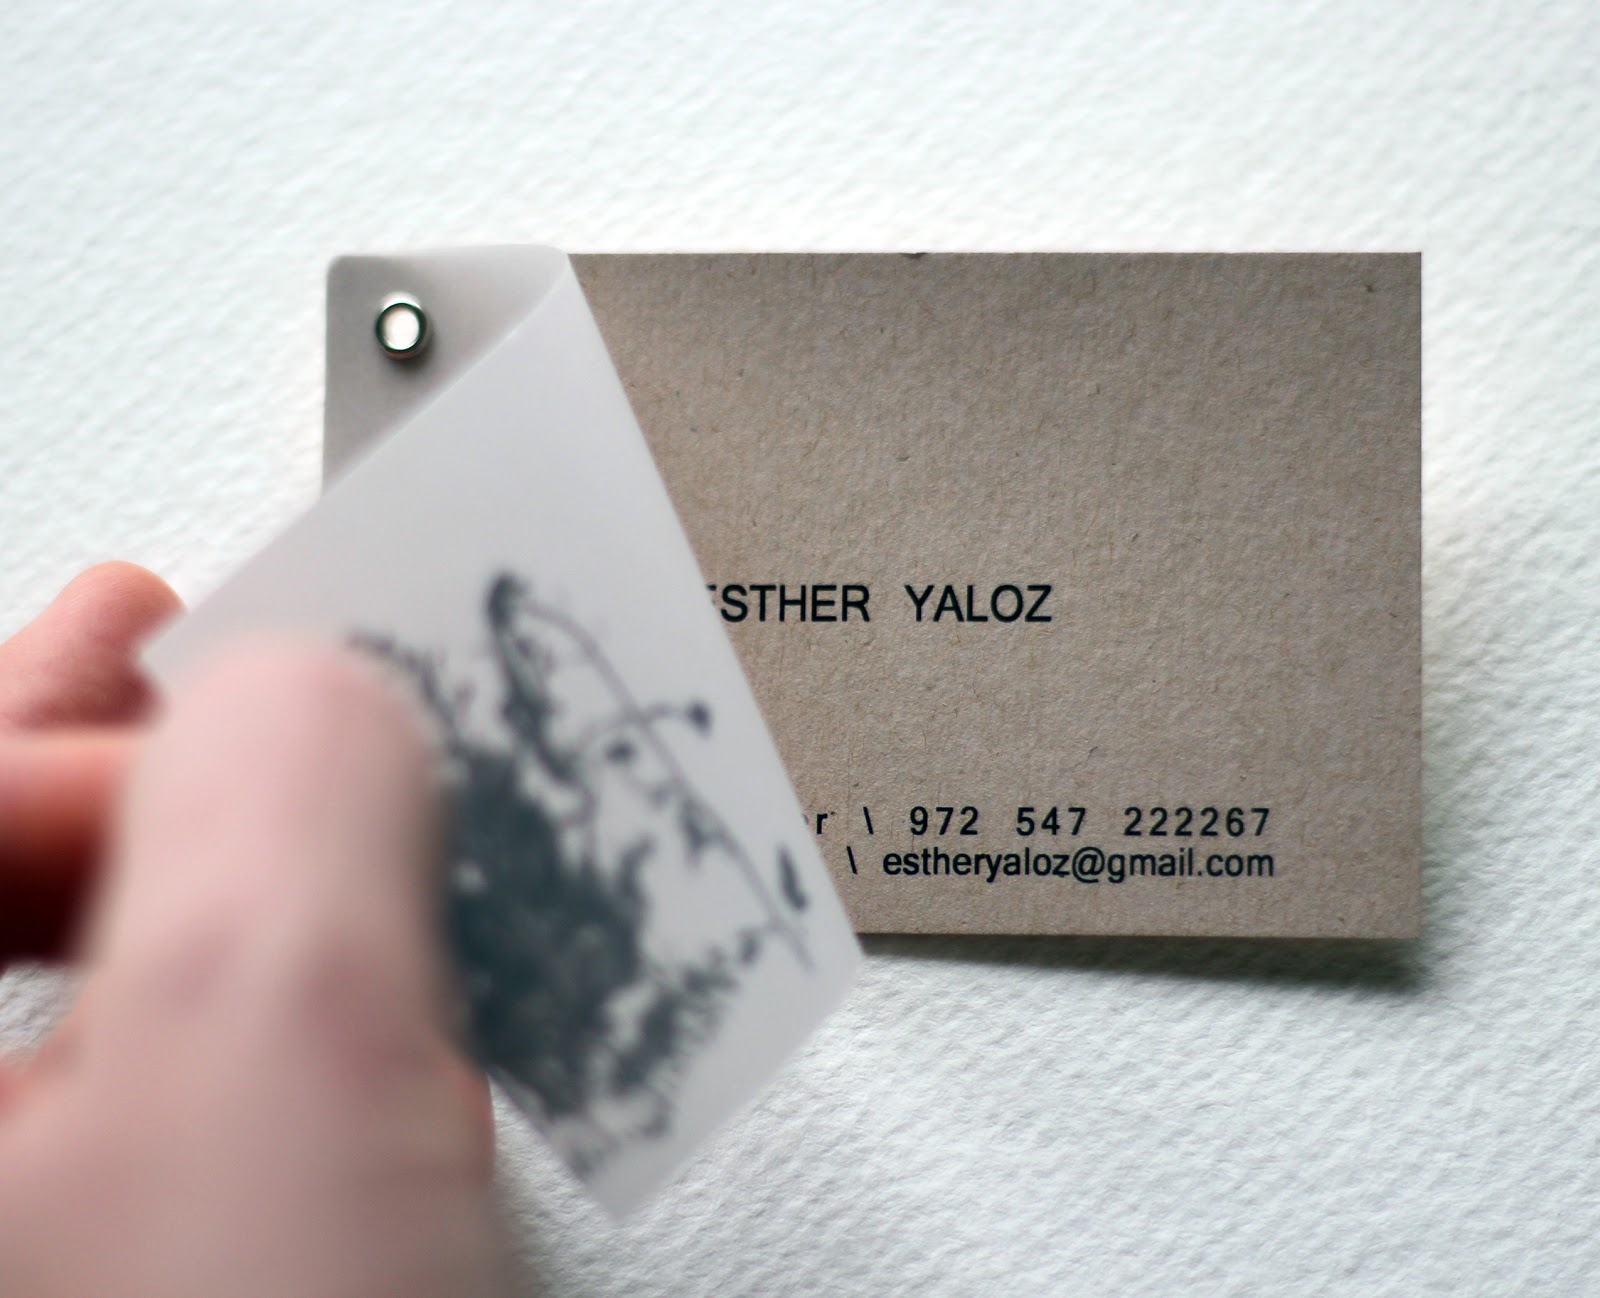 Textile design textileme esther yaloz my business card my business card colourmoves